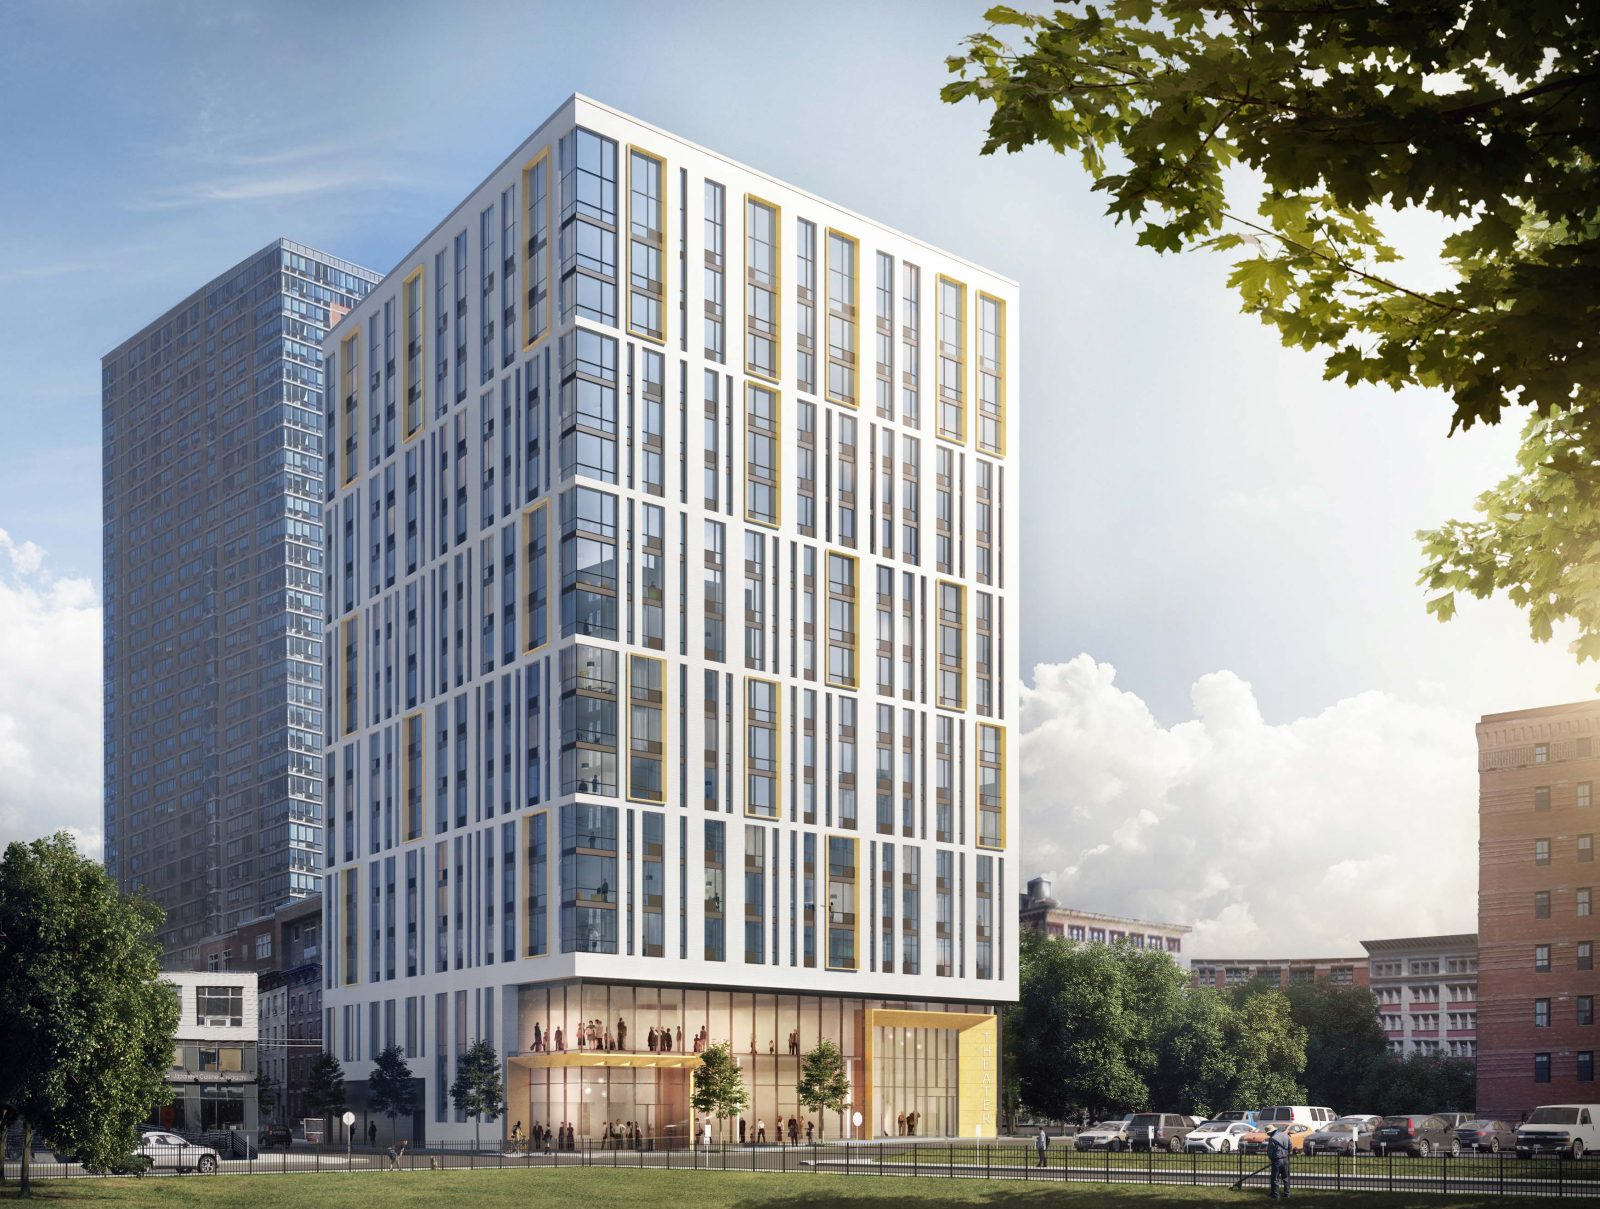 Rendering of 321 Warren Street in Jersey City. Credit: Fogarty Finger Architecture